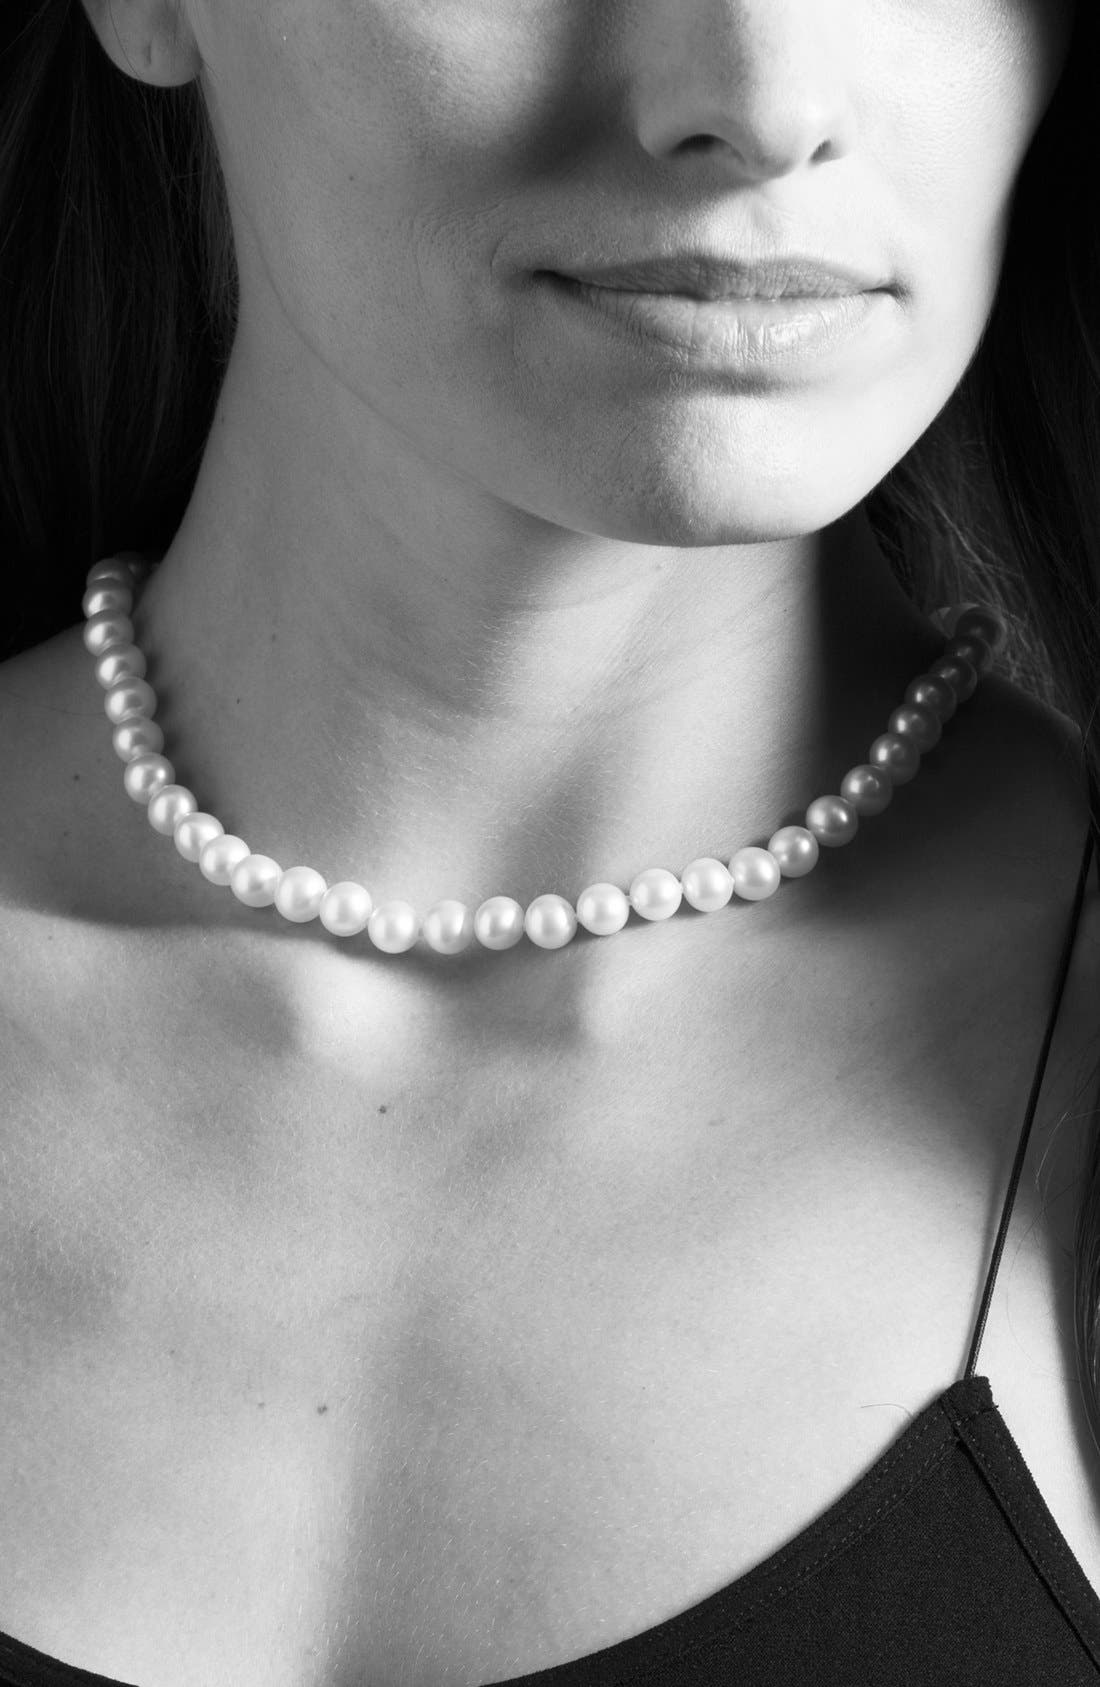 'Luna' 10mm Pearl Necklace,                             Alternate thumbnail 2, color,                             Silver/ Pearl